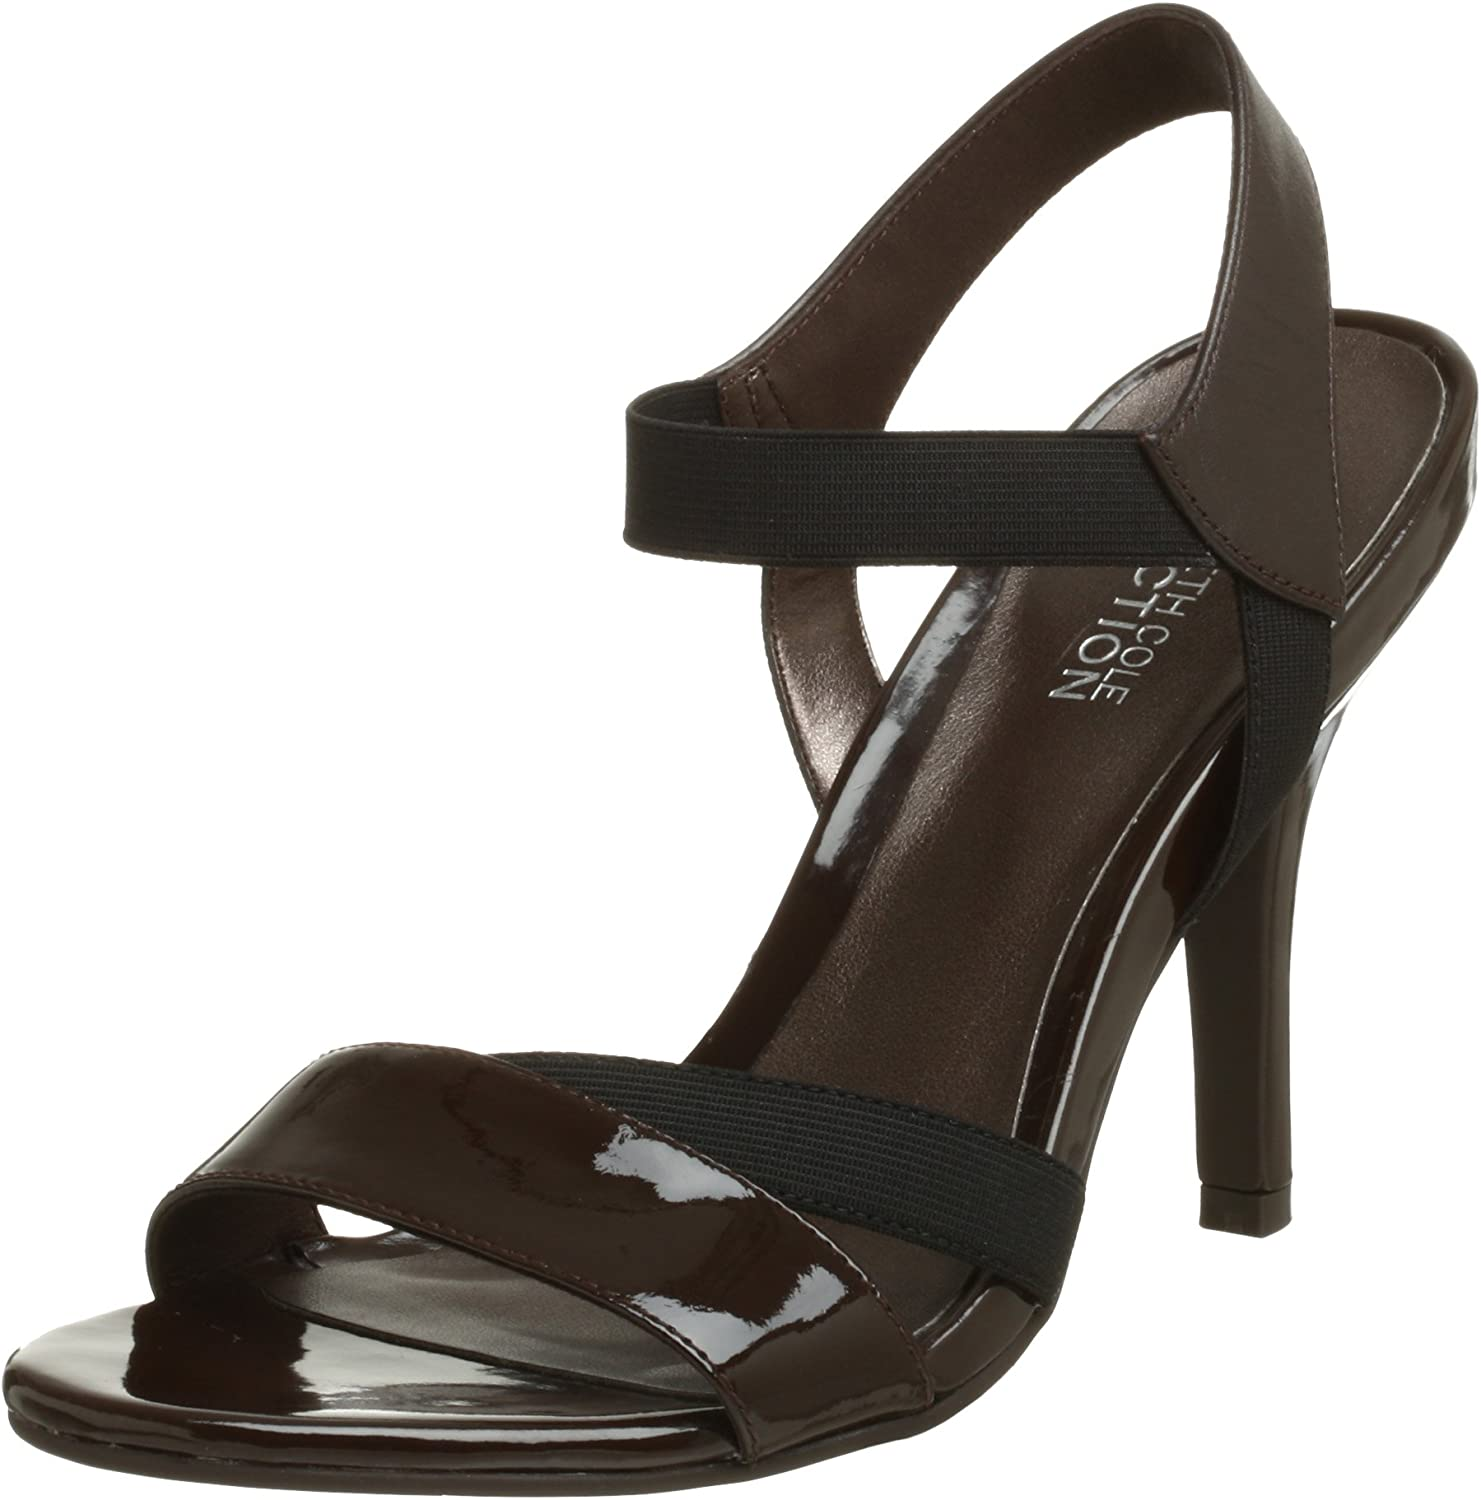 Kenneth Cole REACTION Women's Know Better Sandal